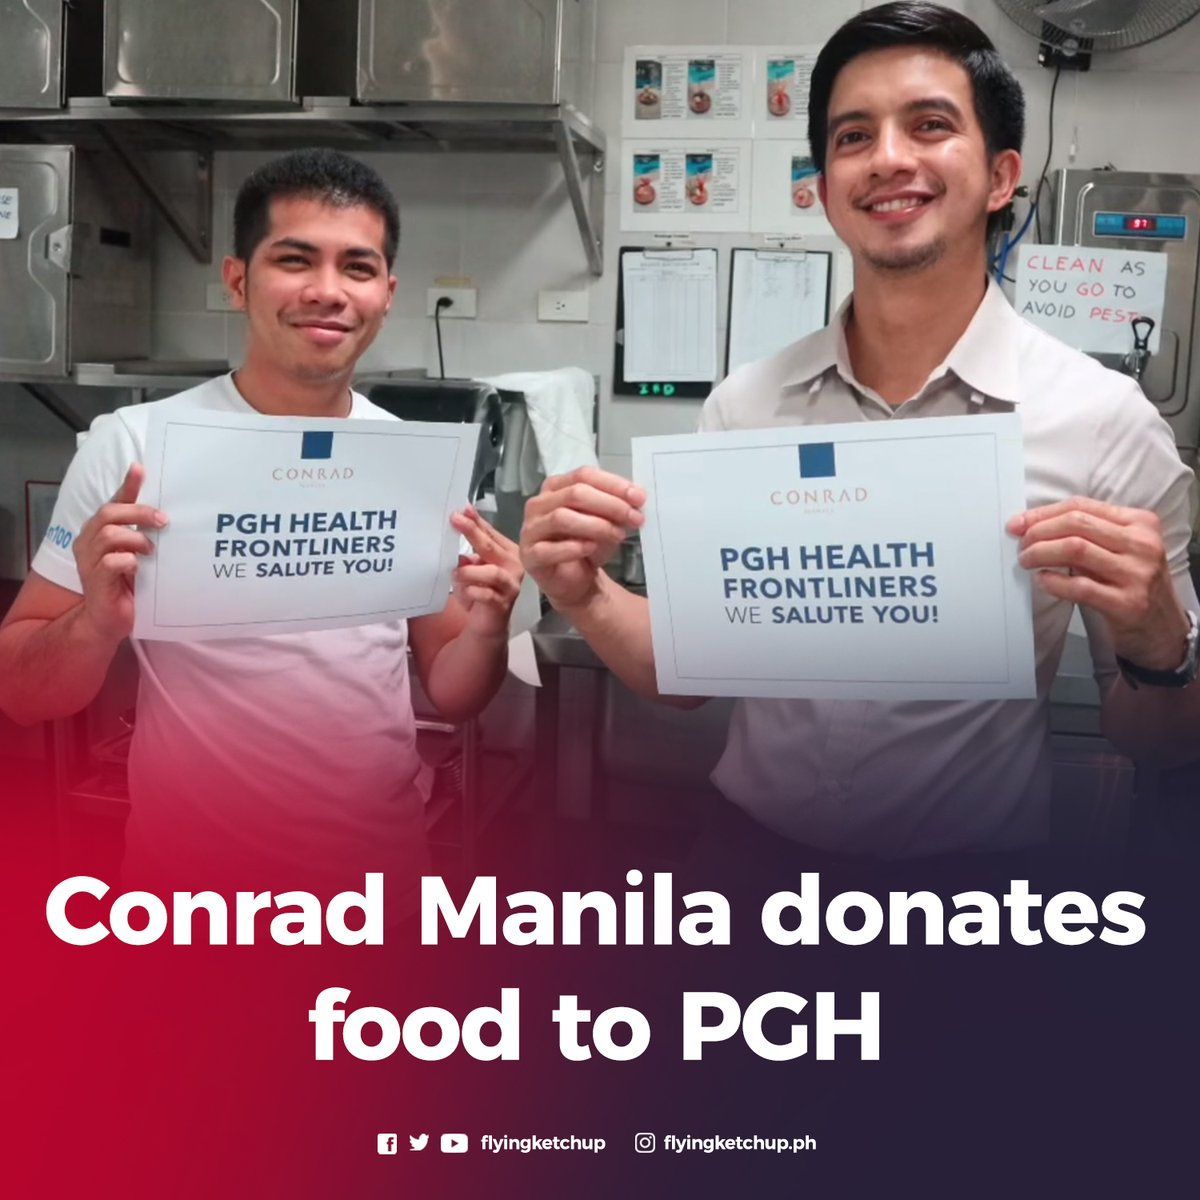 Aside from its frontliners and hotel team members, Conrad Manila's weekly donation has also supported other frontliners within the Mall of Asia complex. https://t.co/Nnbkk80r1c #Covid19PH https://t.co/aeXJwUHaln